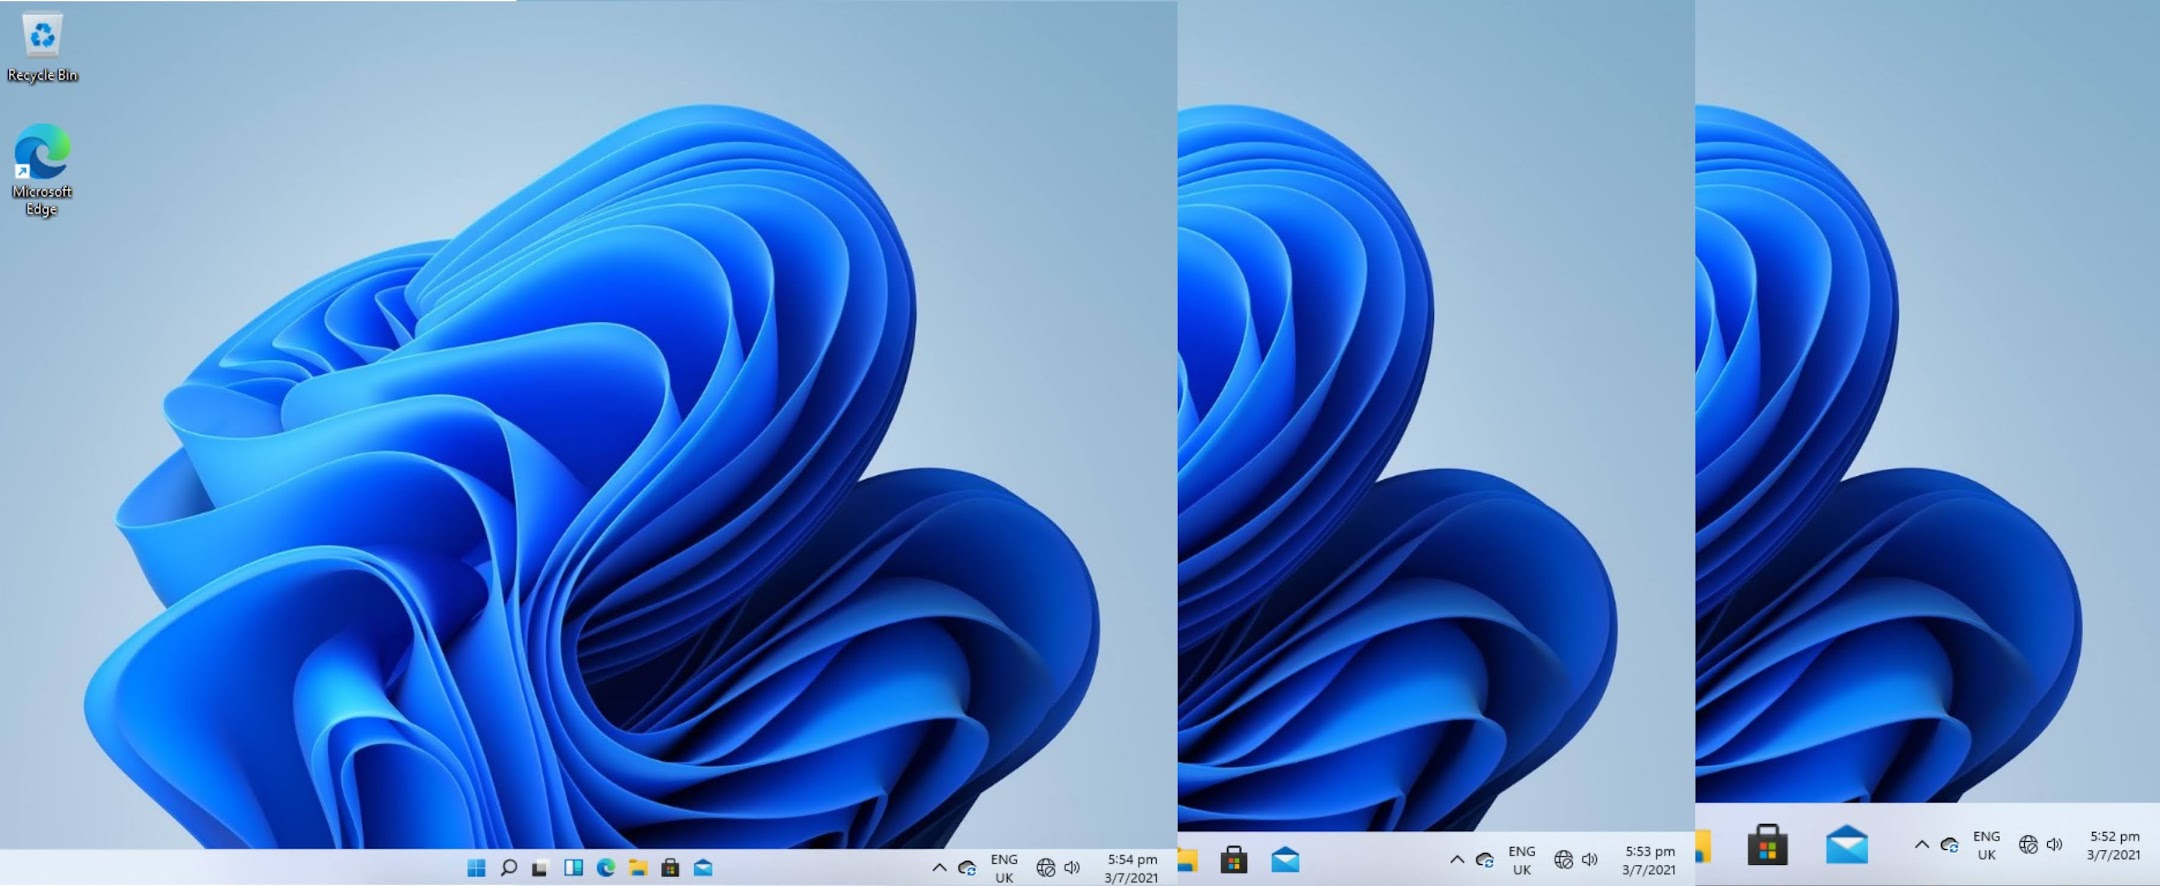 Difference between the 3 taskbar sizes from small, medium to large. Medium is the default taskbar size.